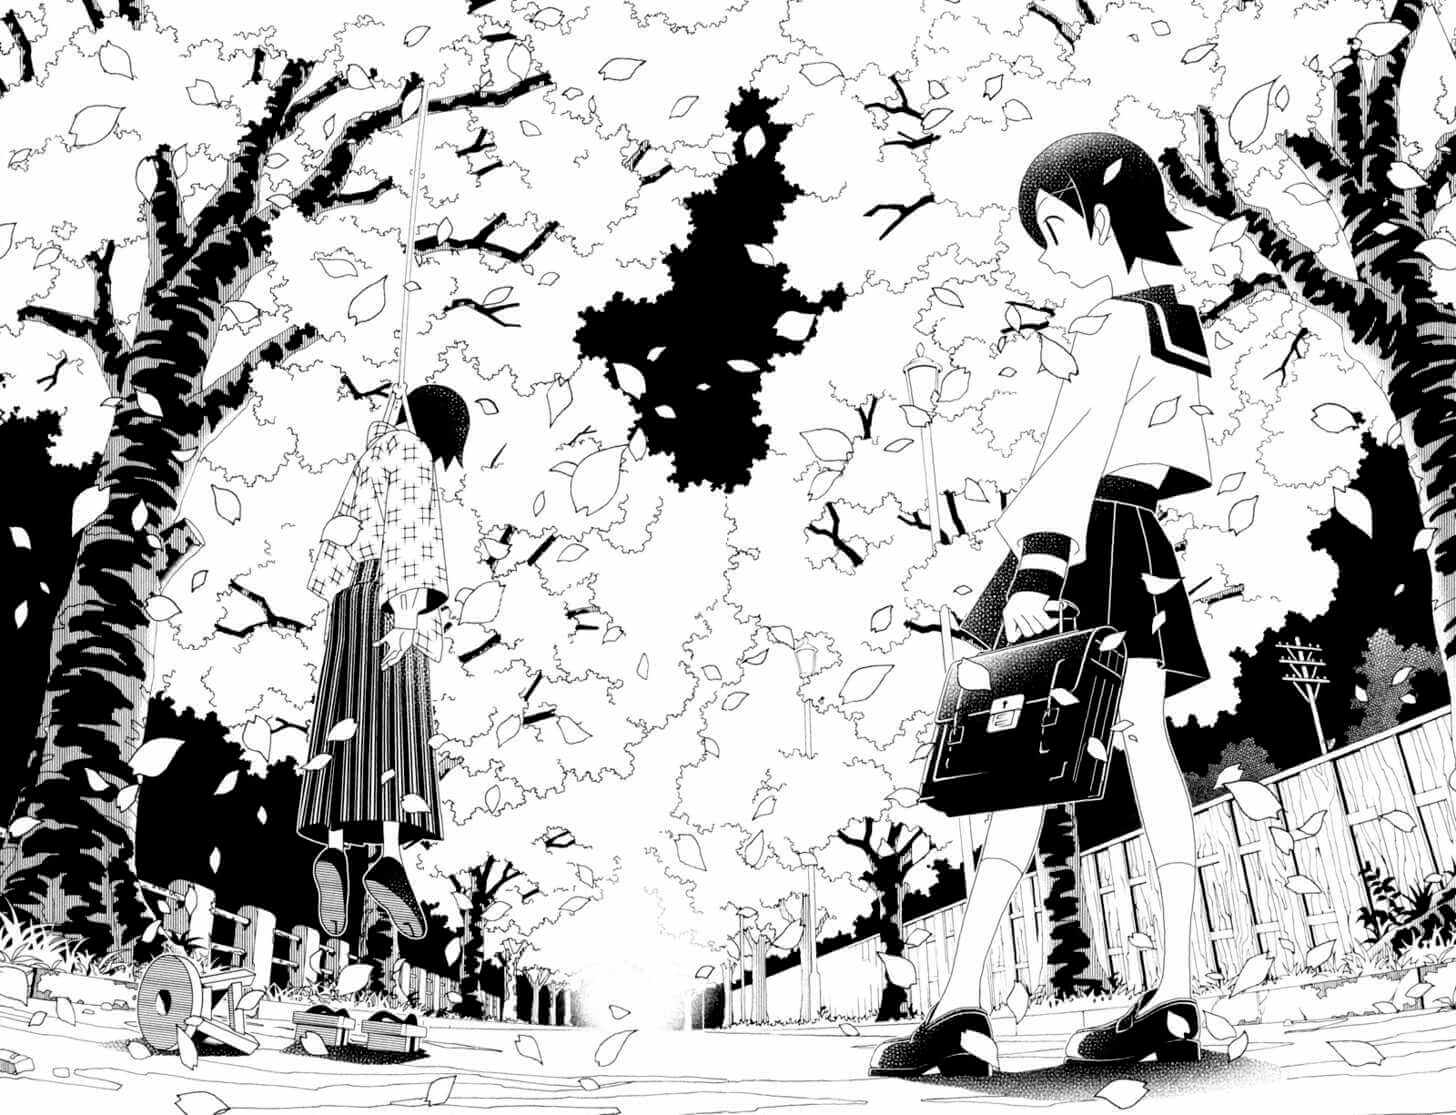 Sayonara Zetsubou Sensei - one of many manga greatly inspired by Ningen Shikkaku